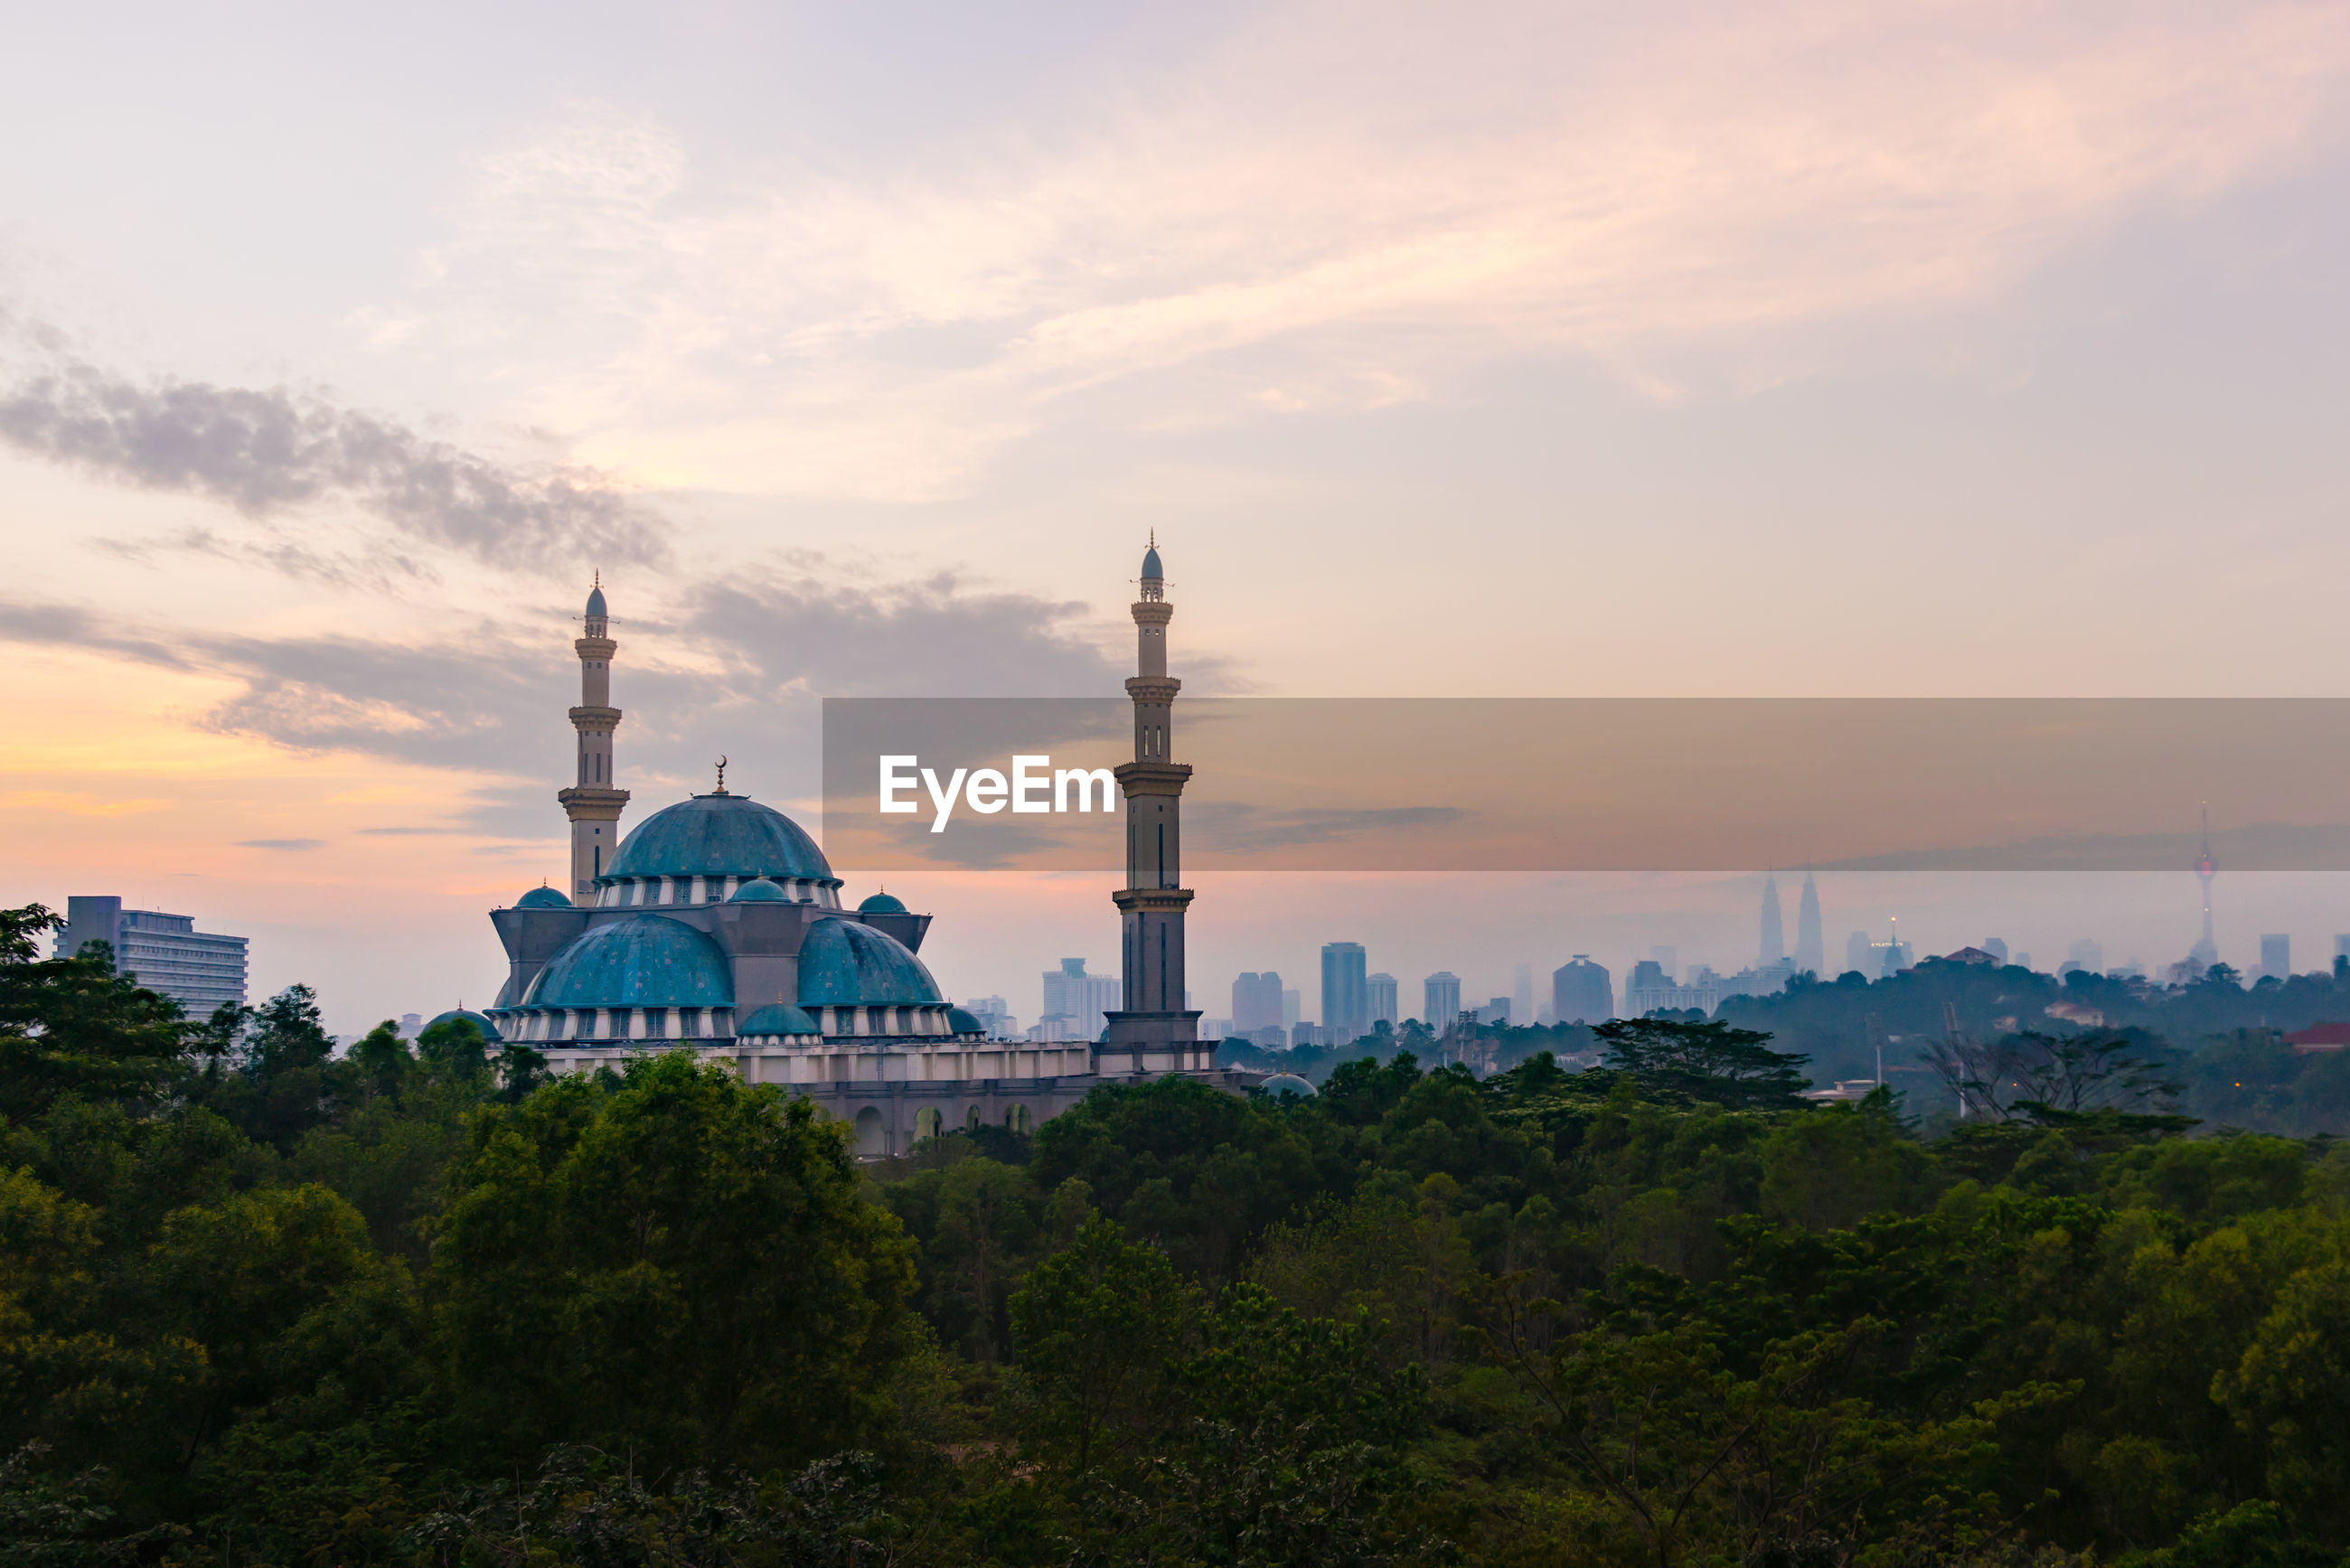 Federal territory mosque against sky during sunset